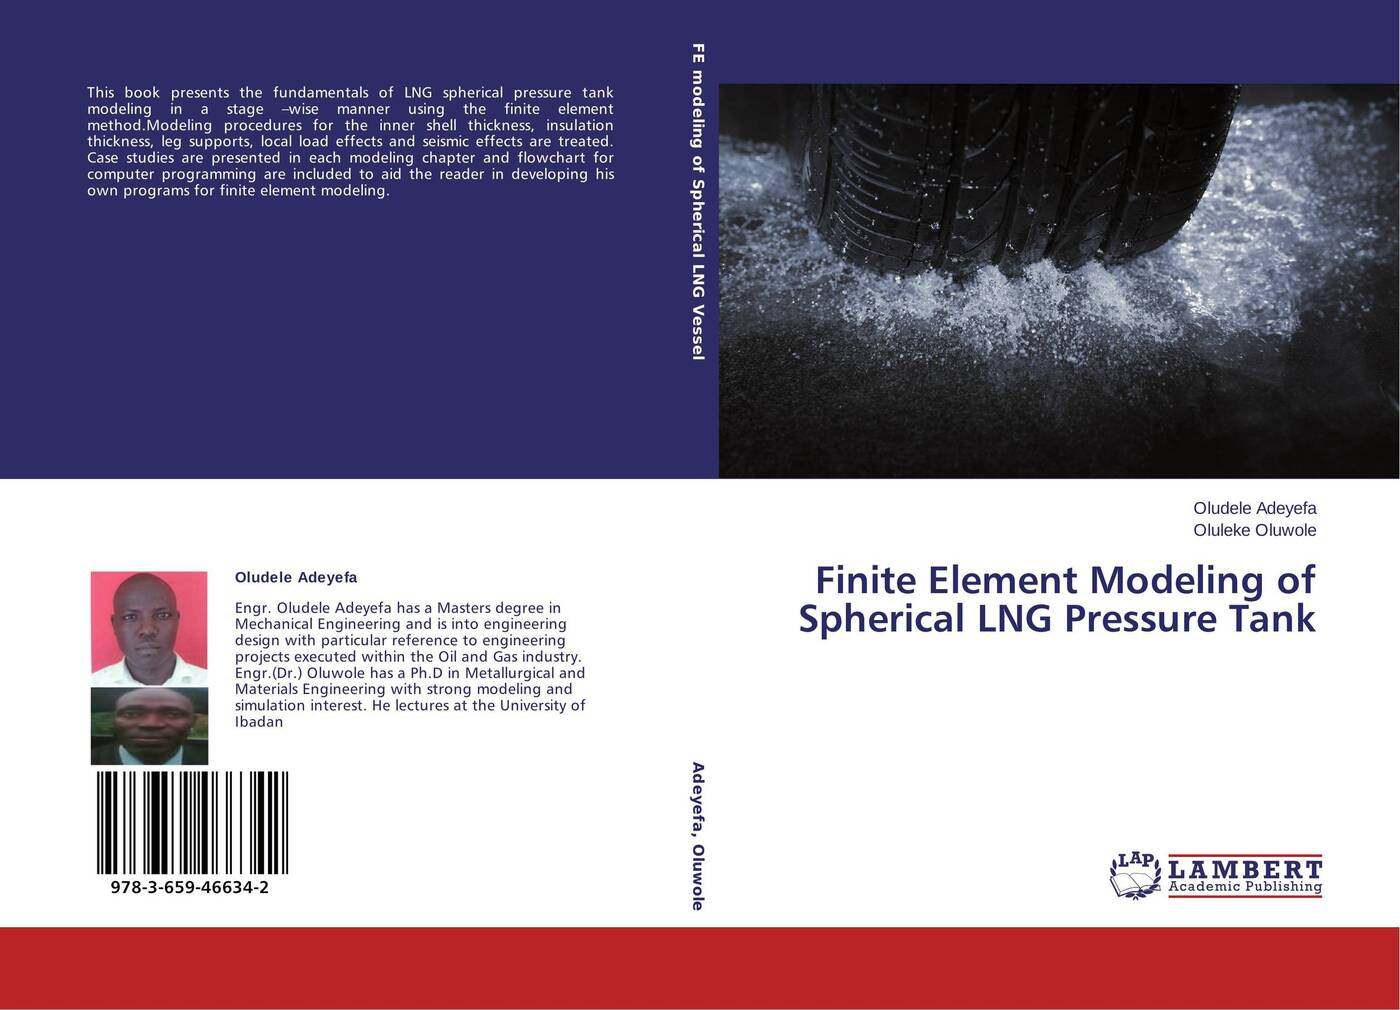 Oludele Adeyefa and Oluleke Oluwole Finite Element Modeling of Spherical LNG Pressure Tank anna stankiewicz plate and shell structures selected analytical and finite element solutions